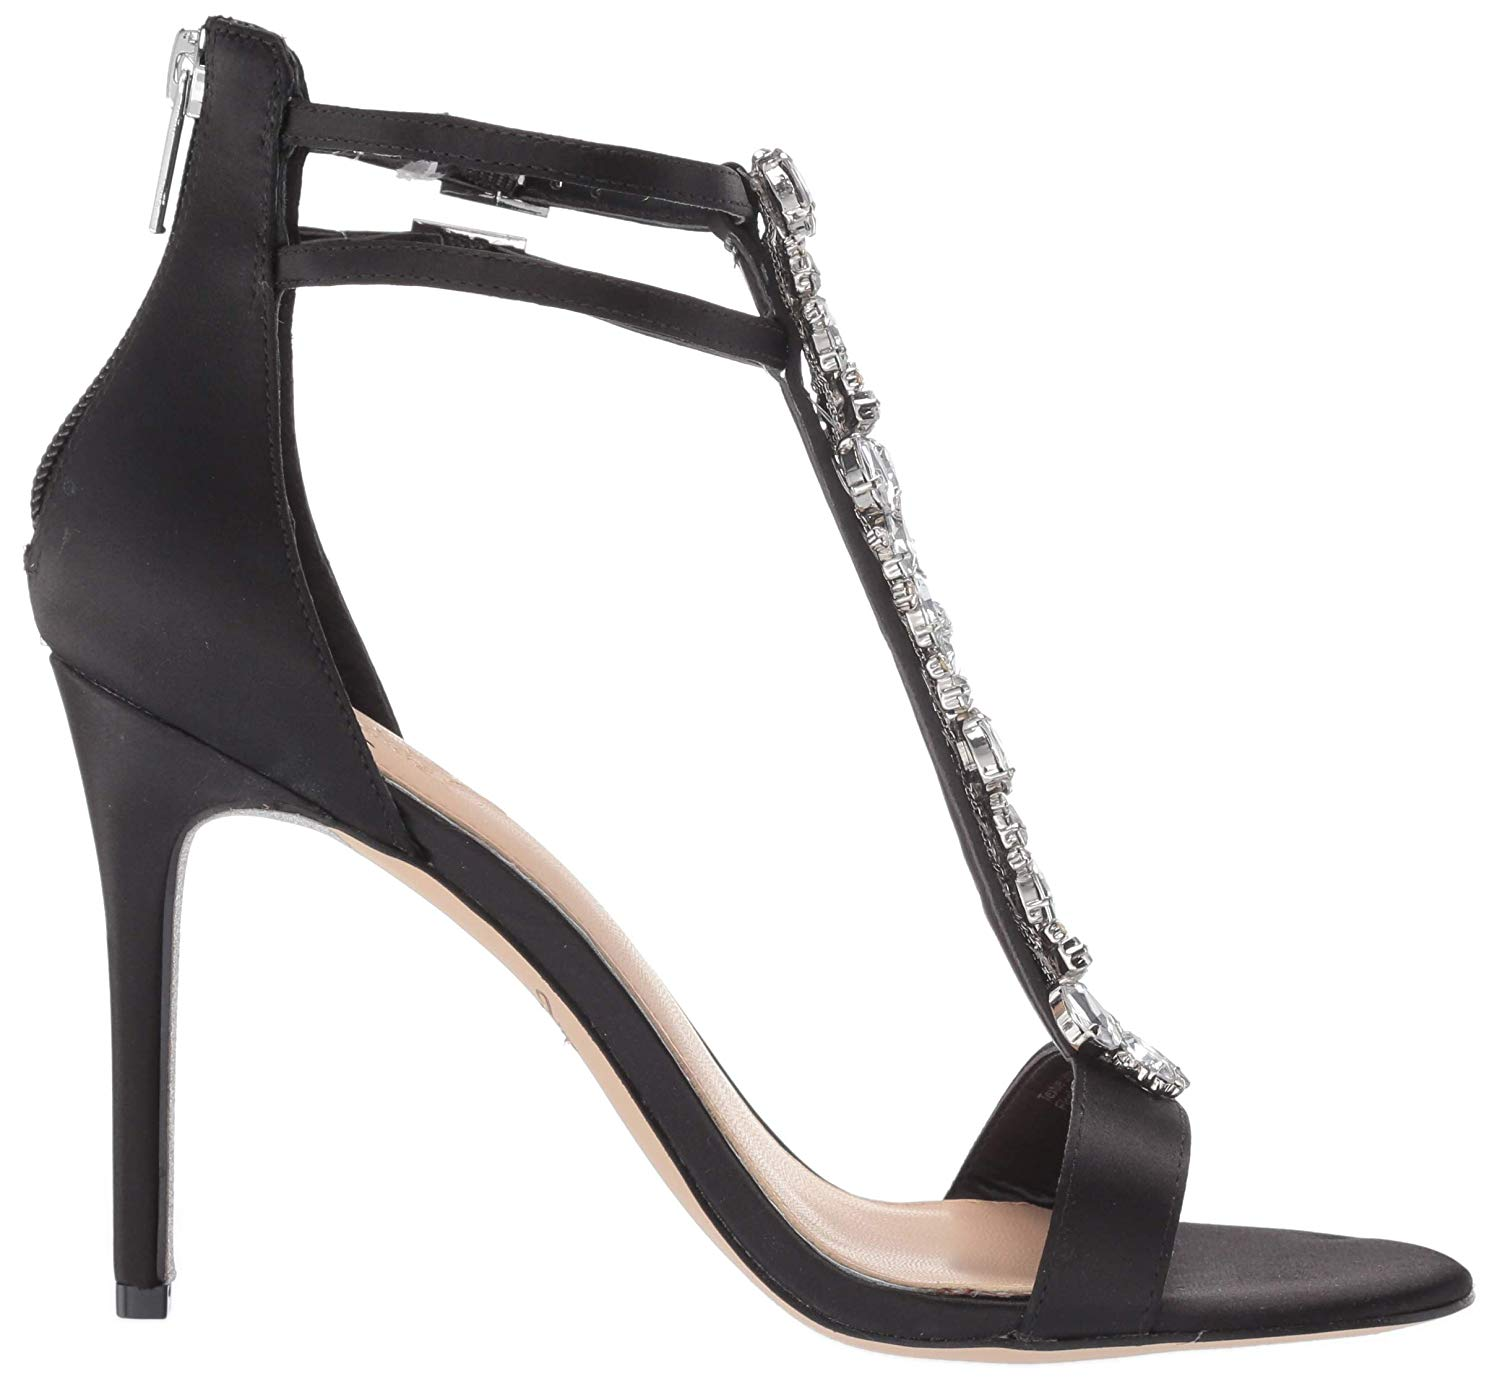 Badgley Mischka Jewel Daughtry Sandal 02